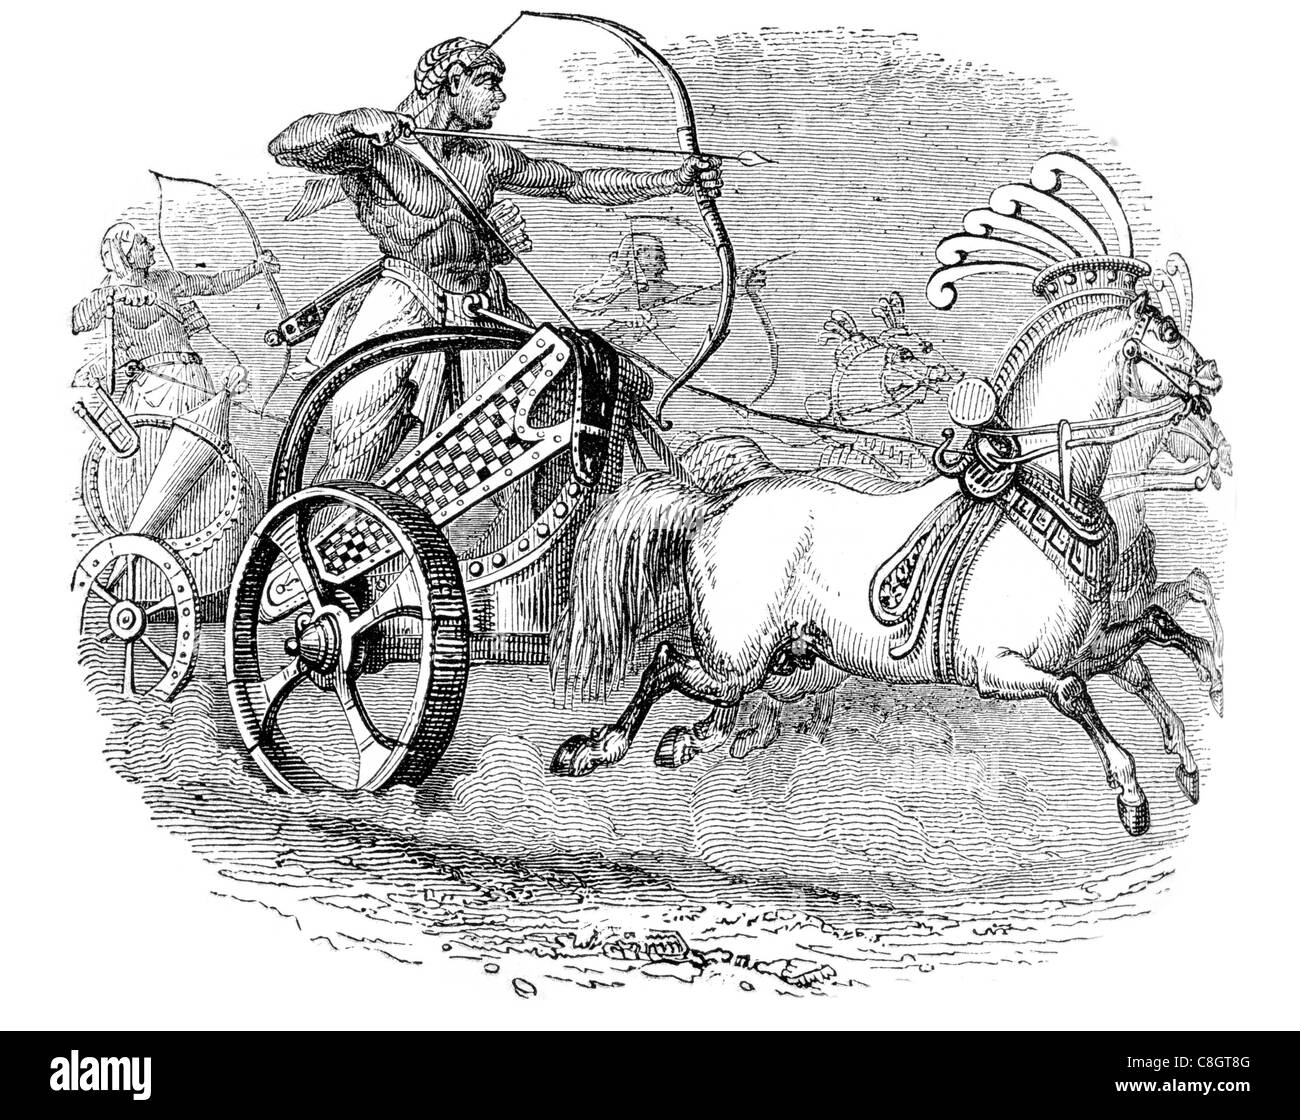 Chariots chariot ancient Egyptian society chariotry King's military force weapon Egypt Hyksos archer bow arrow horse - Stock Image